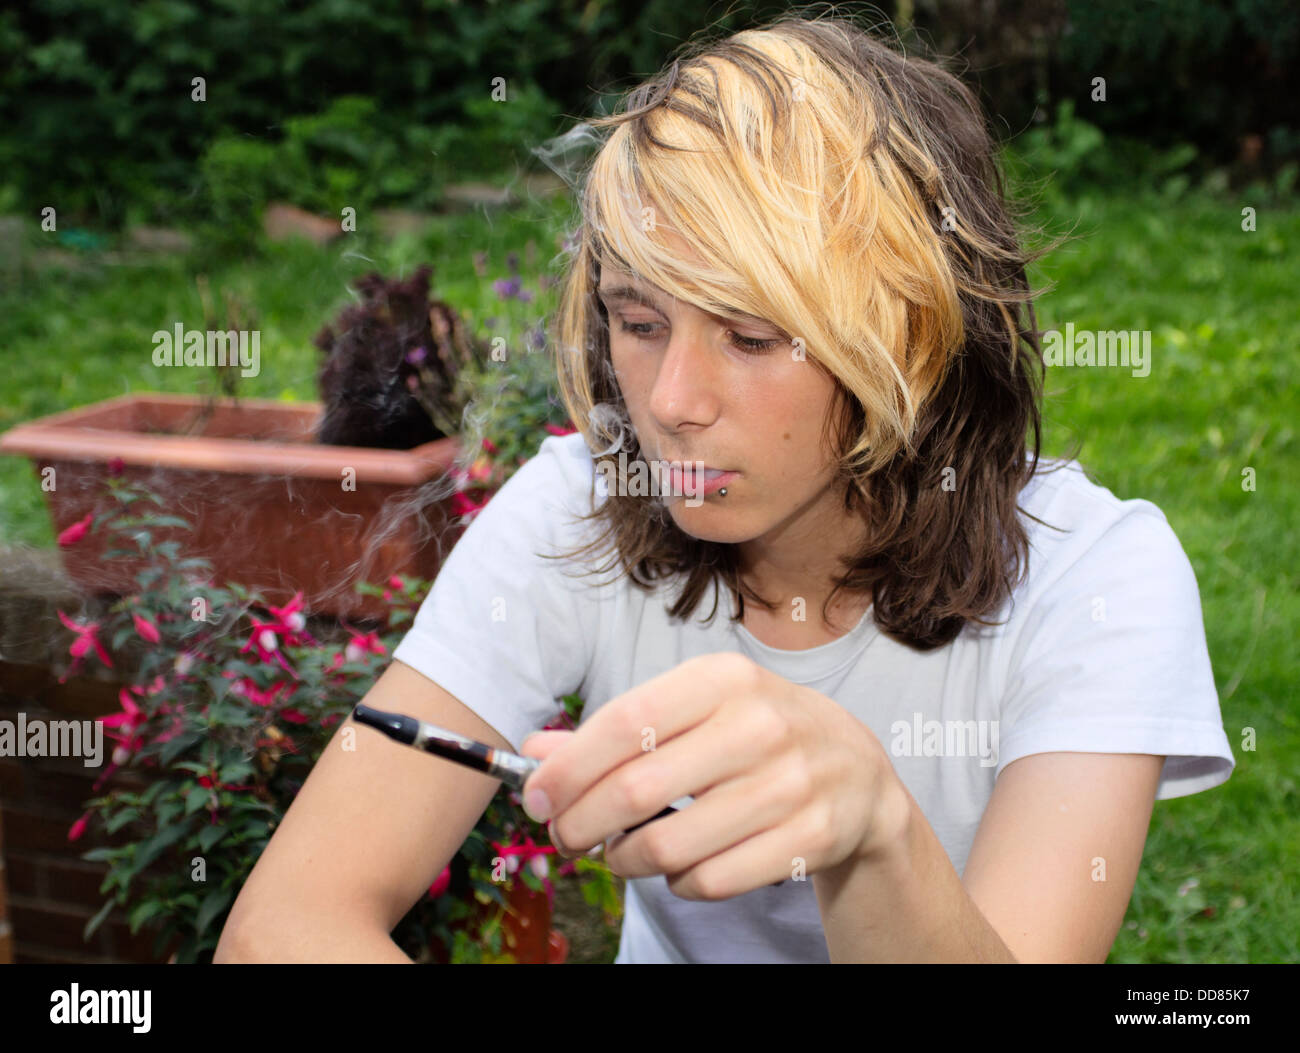 A teenage boy sitting in a garden, smoking an electronic cigarette and exhaling vapour - Stock Image